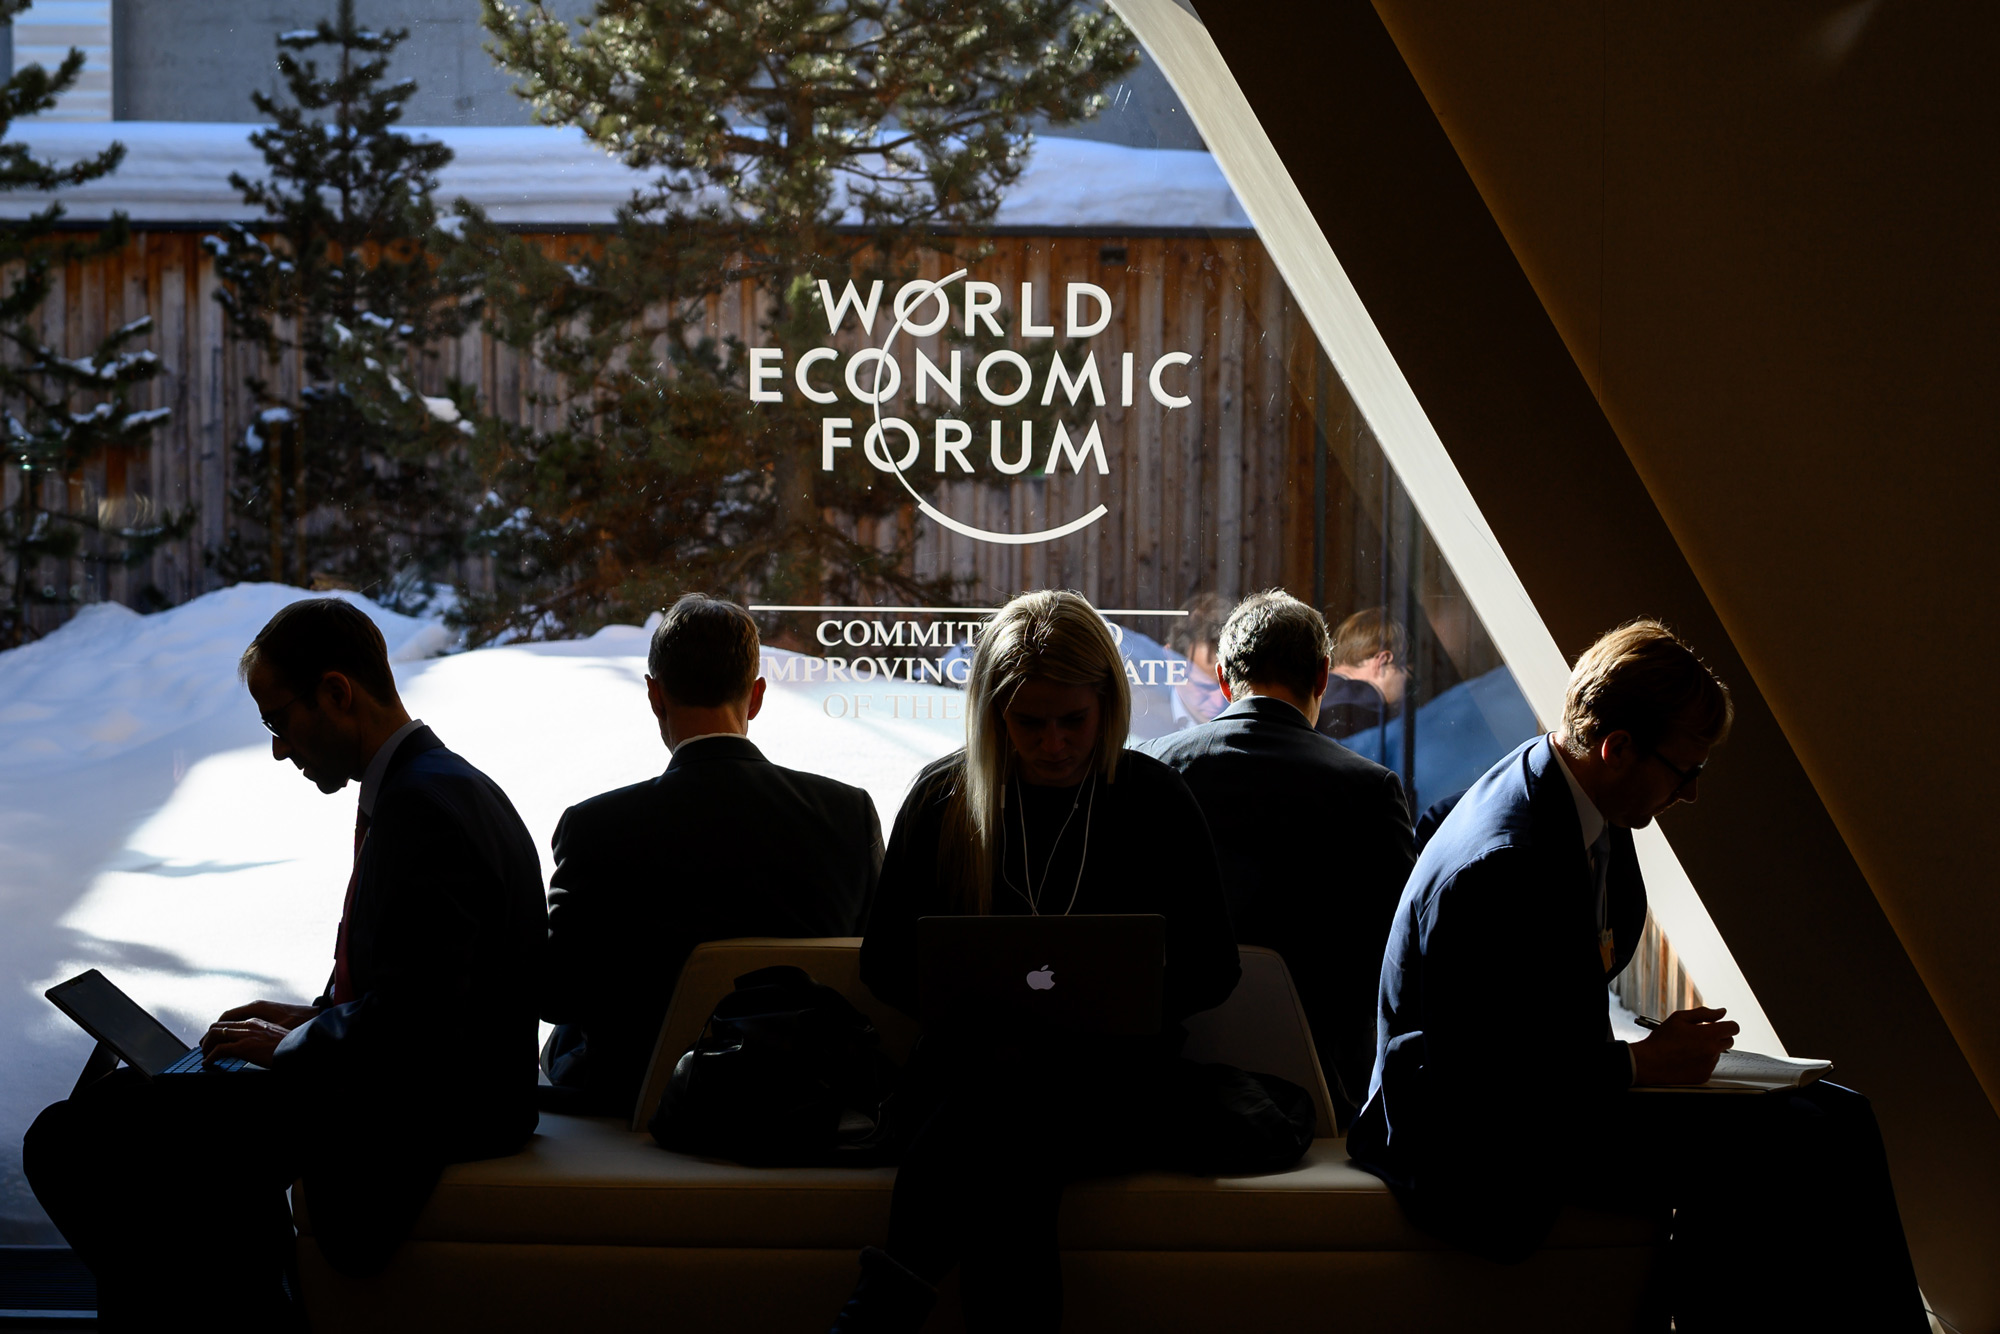 Participants sit near a window during the World Economic Forum annual meeting in Davos, on January 23.